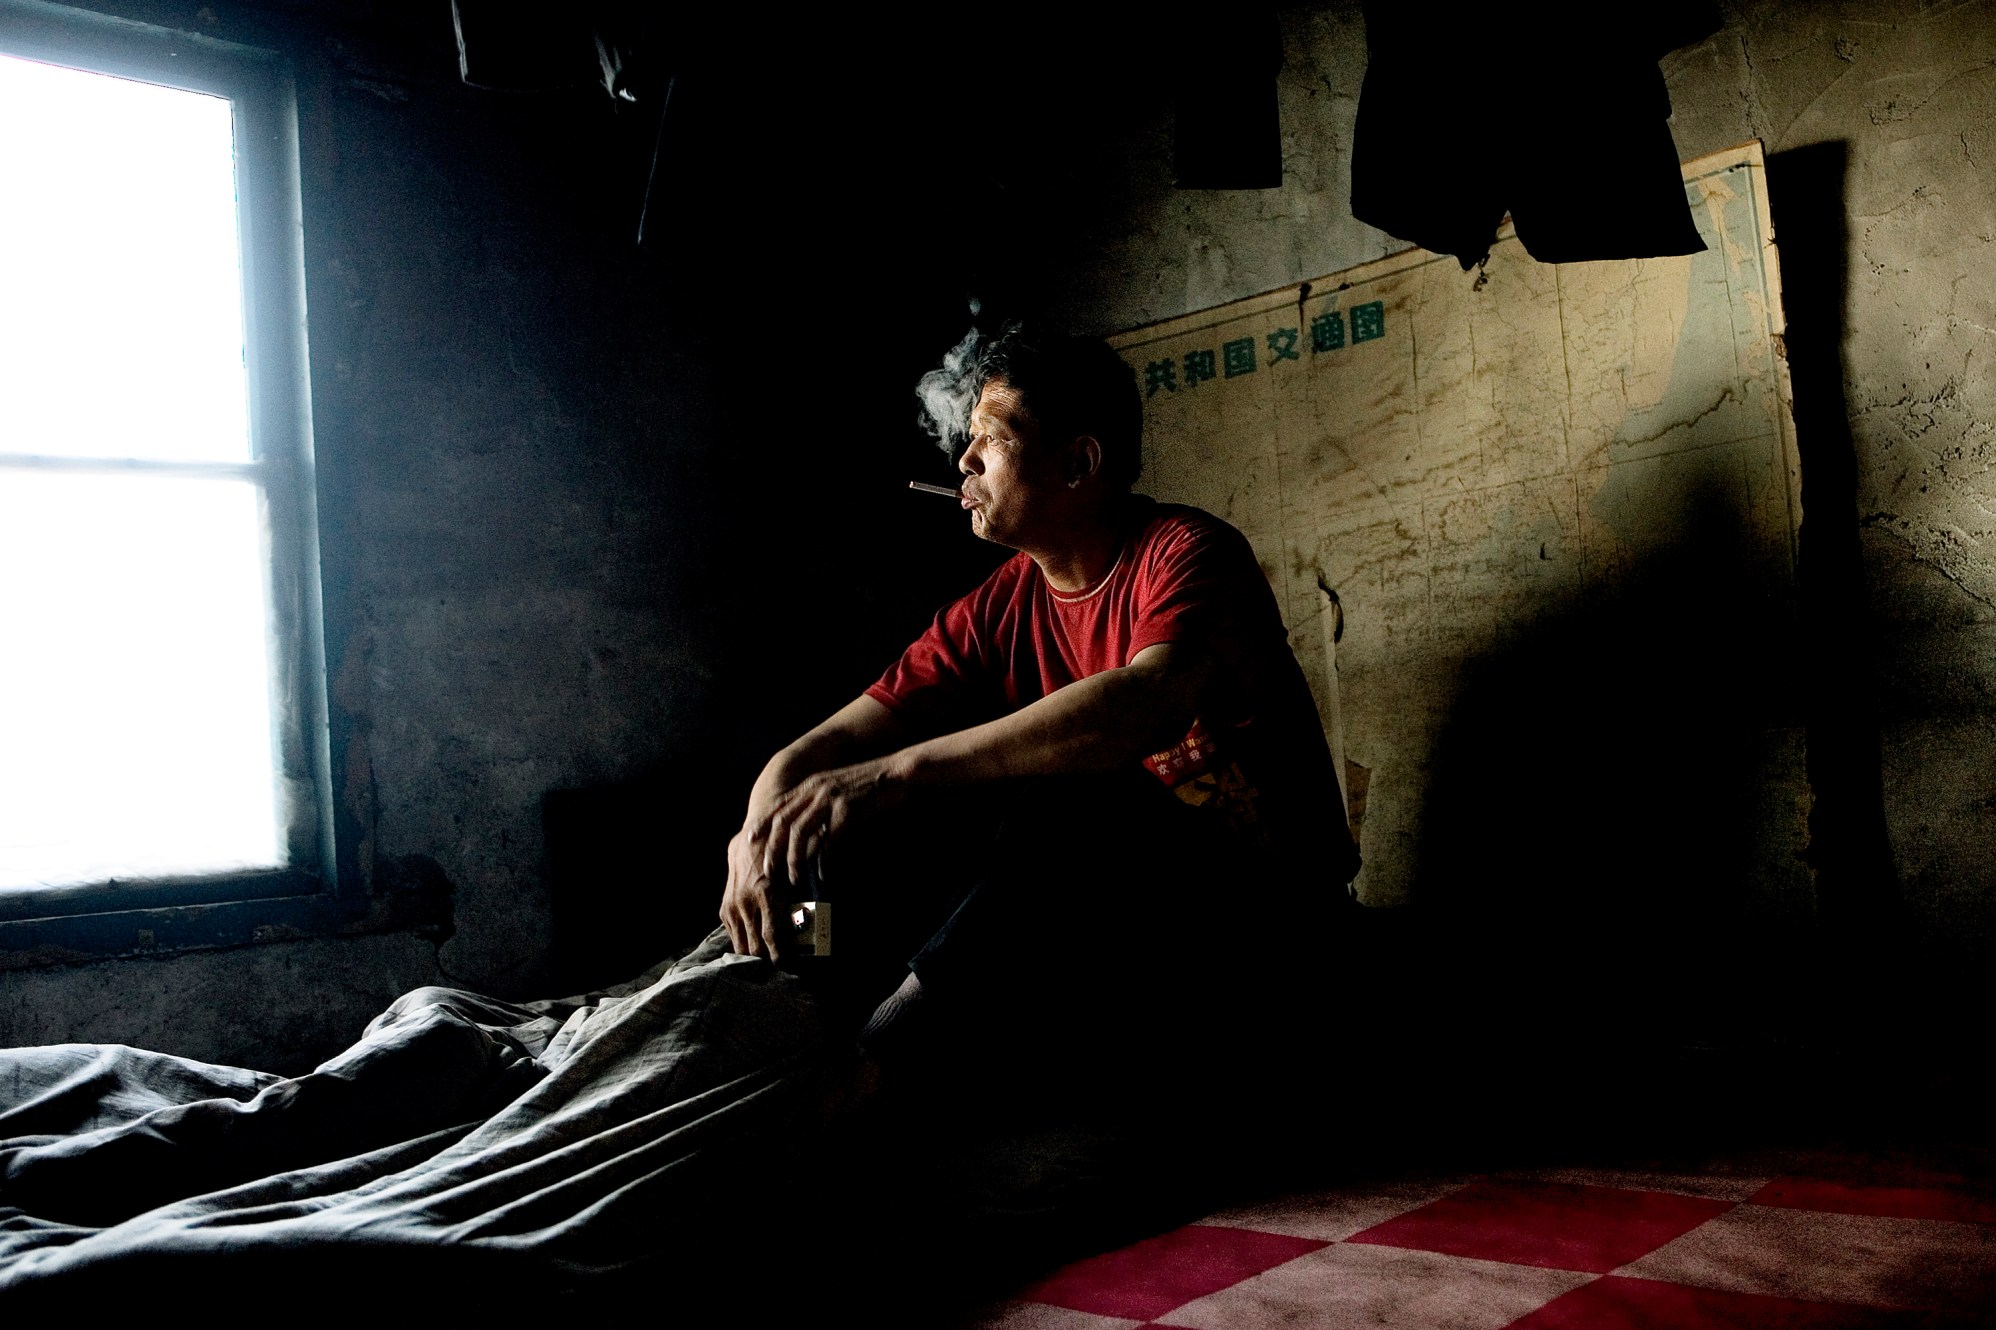 The first cigarette of the day quickly fills the room, seconds after the oldest brother of the migrant family, Jiang Jigao, has awoken early in the morning. Soon after the 14 hour-a-day work at the paper factory run-outs begins. He used to work as a fisherman, but there are no longer any fish in the river that runs through his village. Christian Als / GraziaNeri